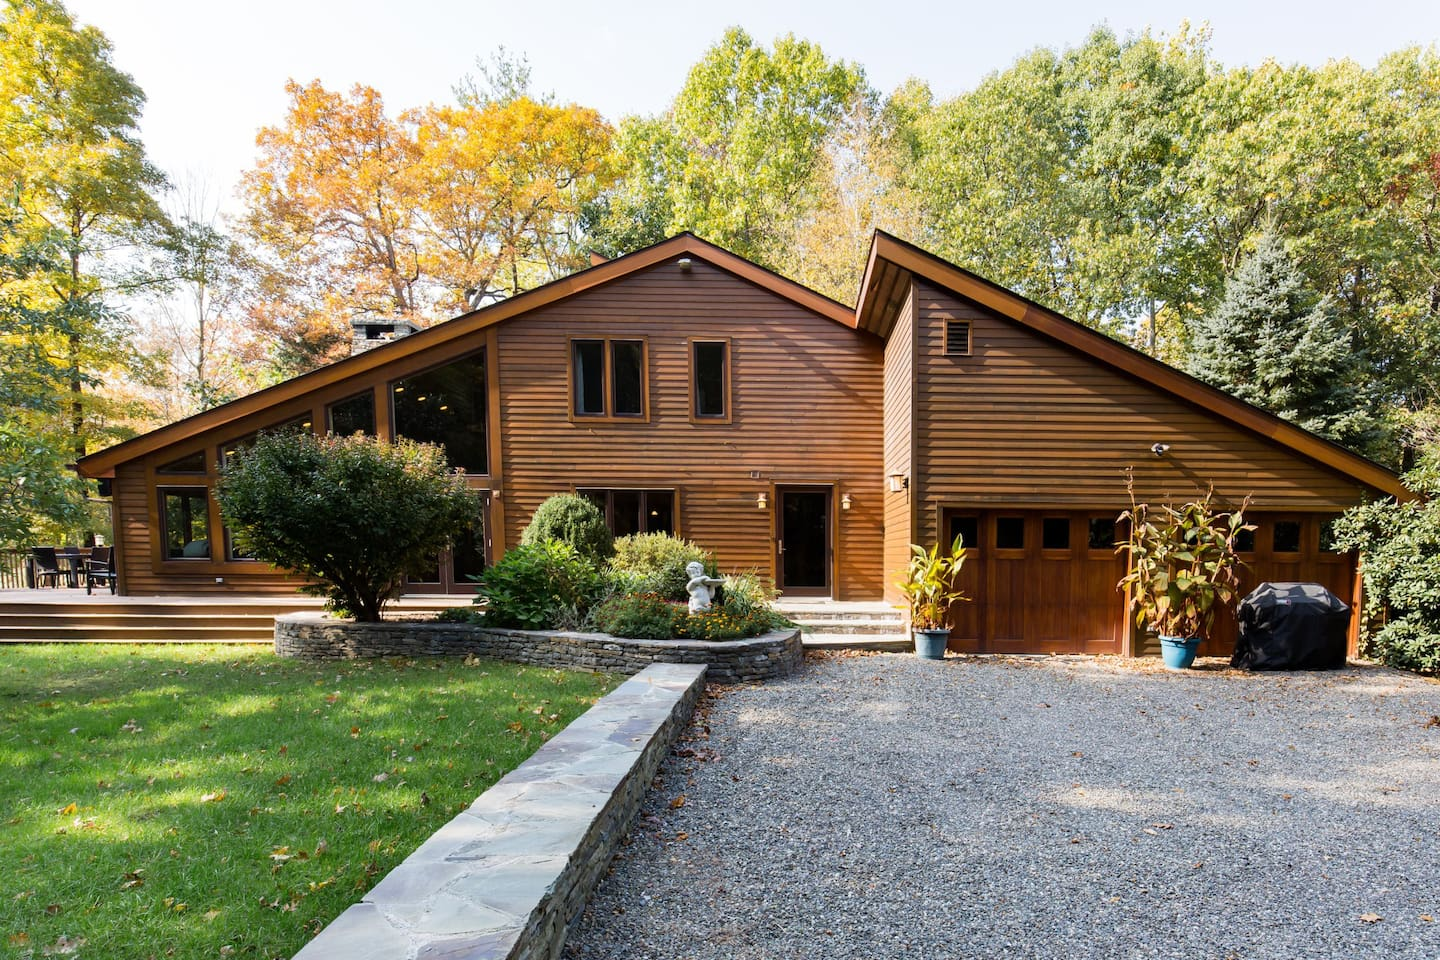 Welcome to 10 West Bard, Red Hook, NY, a 5-minute walk from Bard College, at the edge of the bubbling Sawkill Creek.